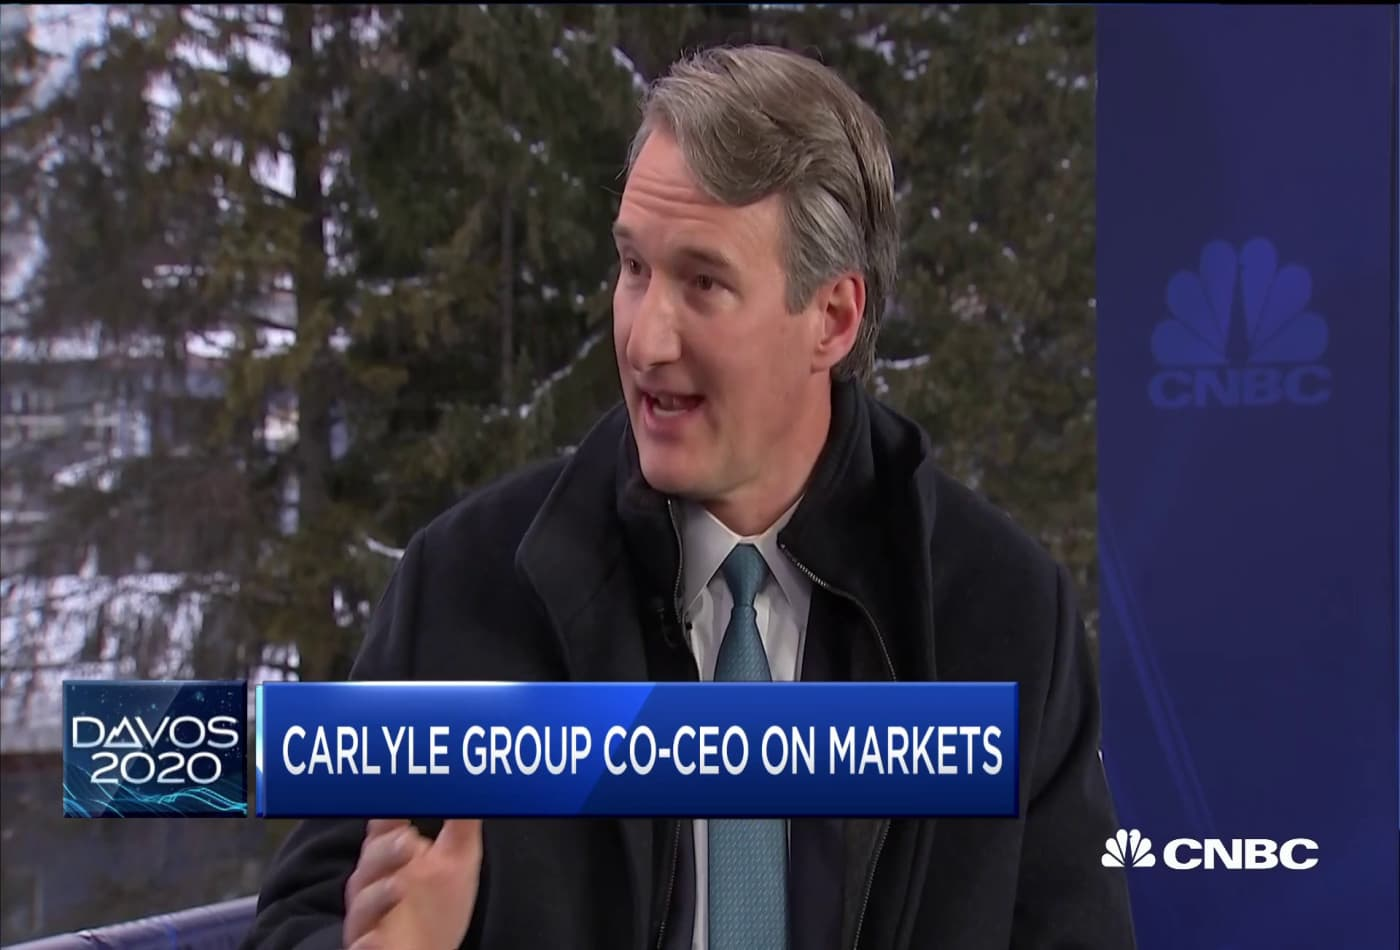 Carlyle Group co-CEO Glenn Youngkin on the investment landscape